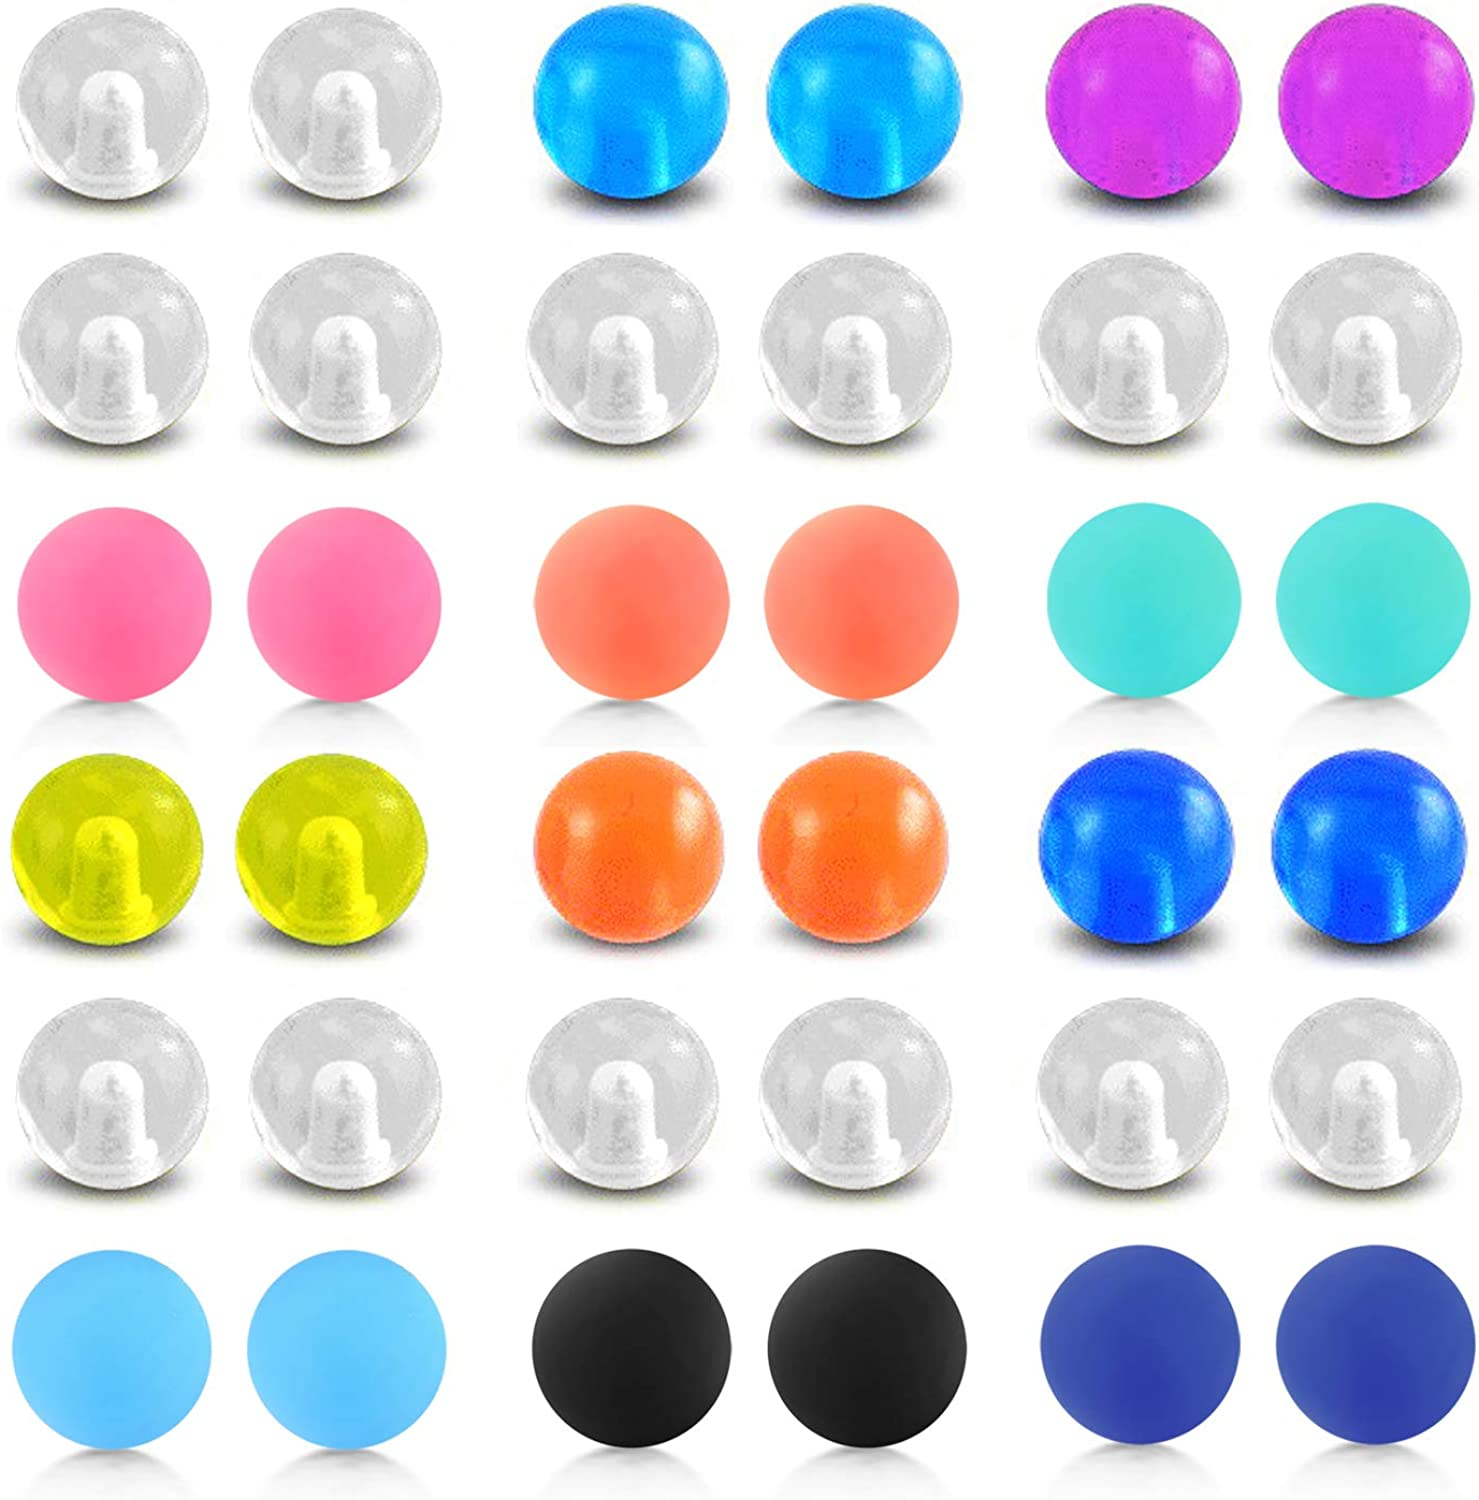 D.Bella 60pcs 316L depot Surgical Steel wholesale Jewelry Body Replacement Balls